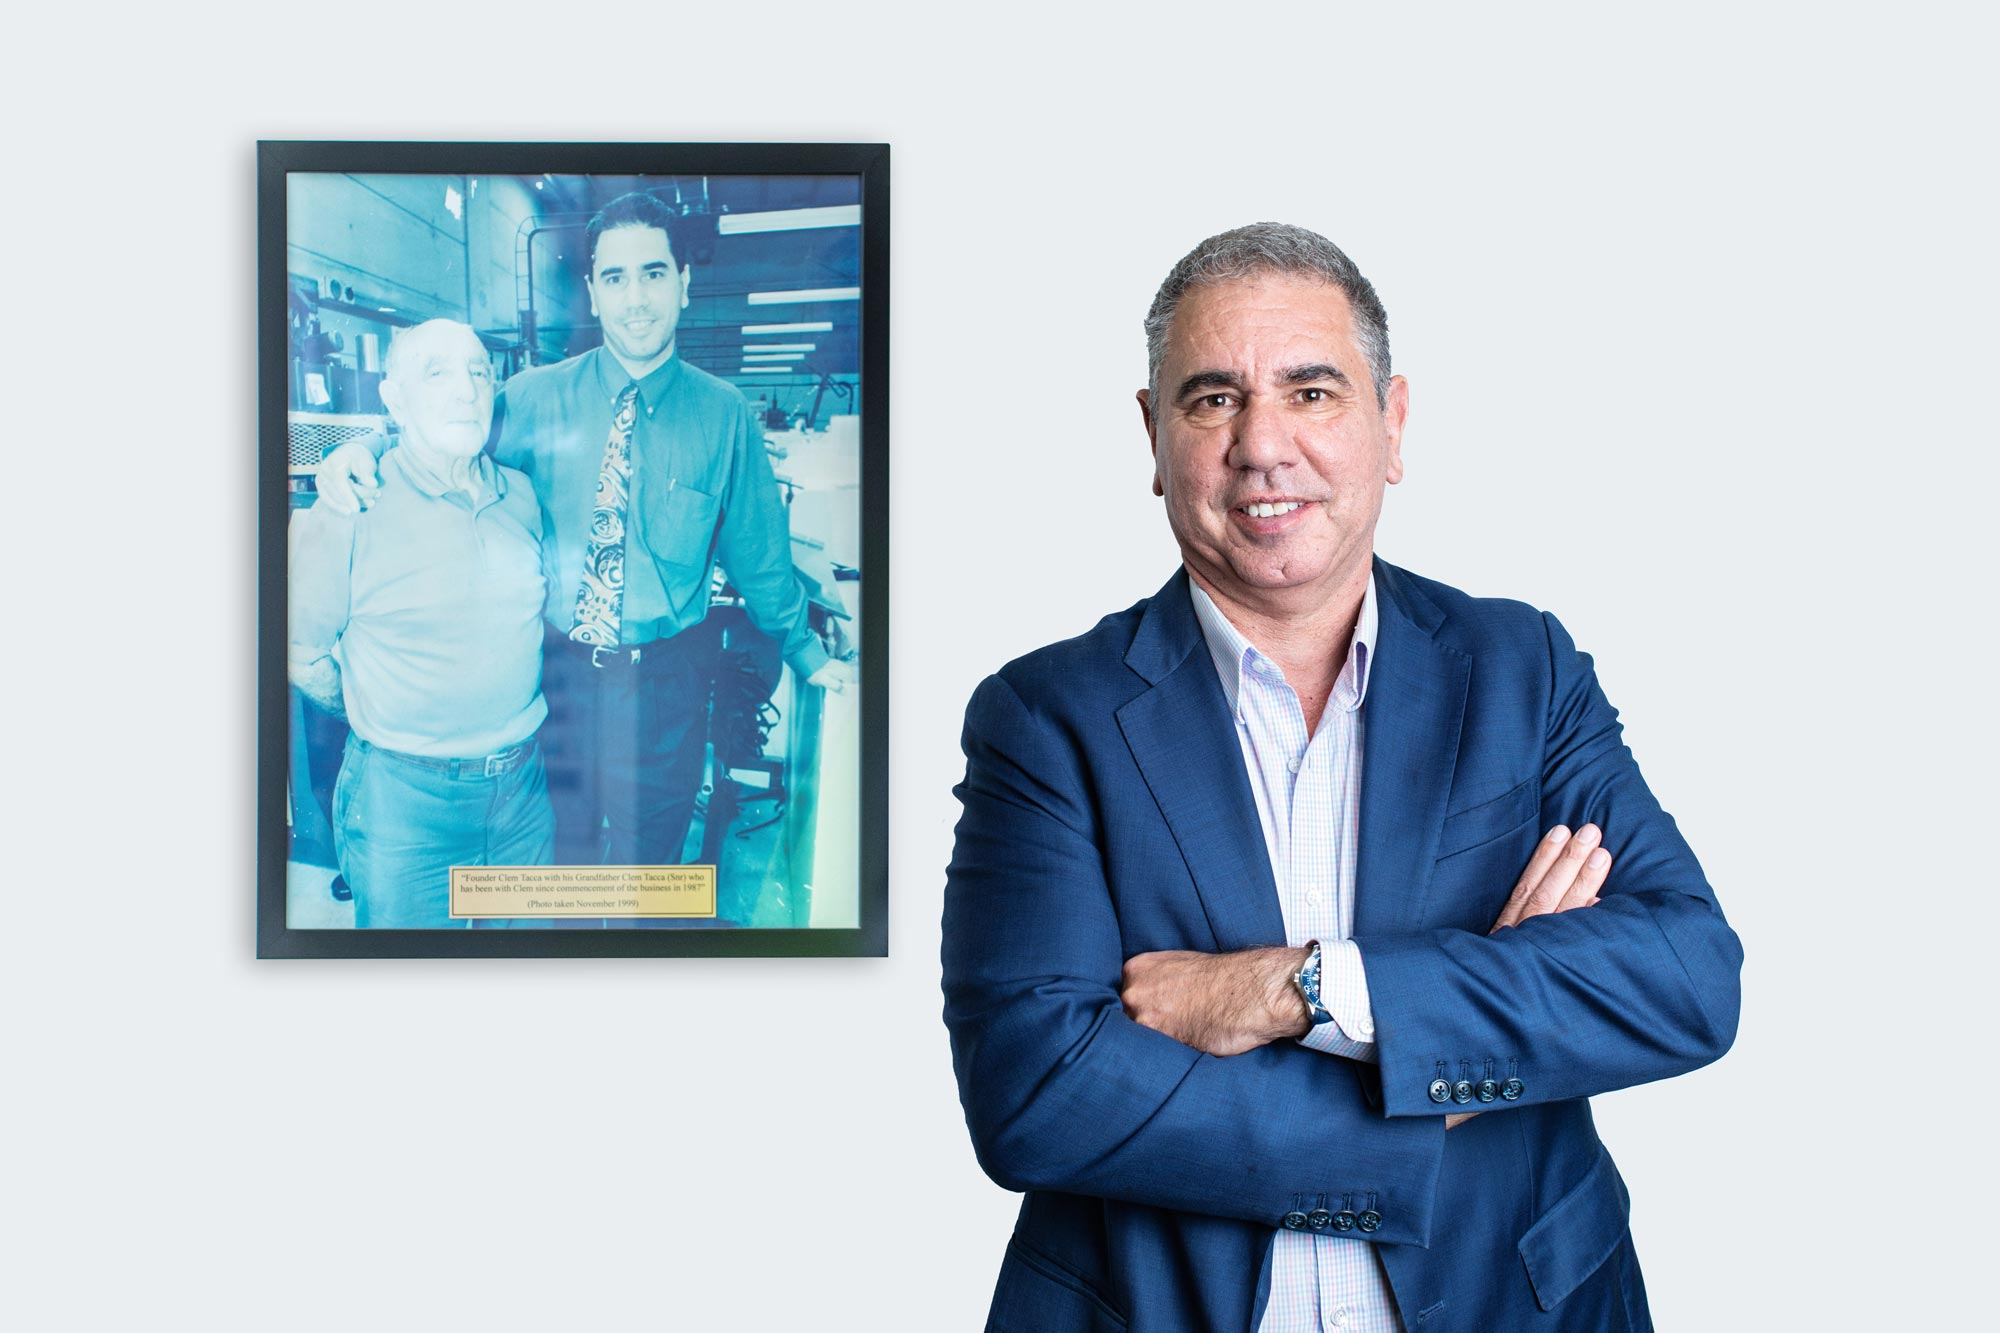 Photo of Tacca CEO Clem Tacca next to a photo of himself and his grandfather.